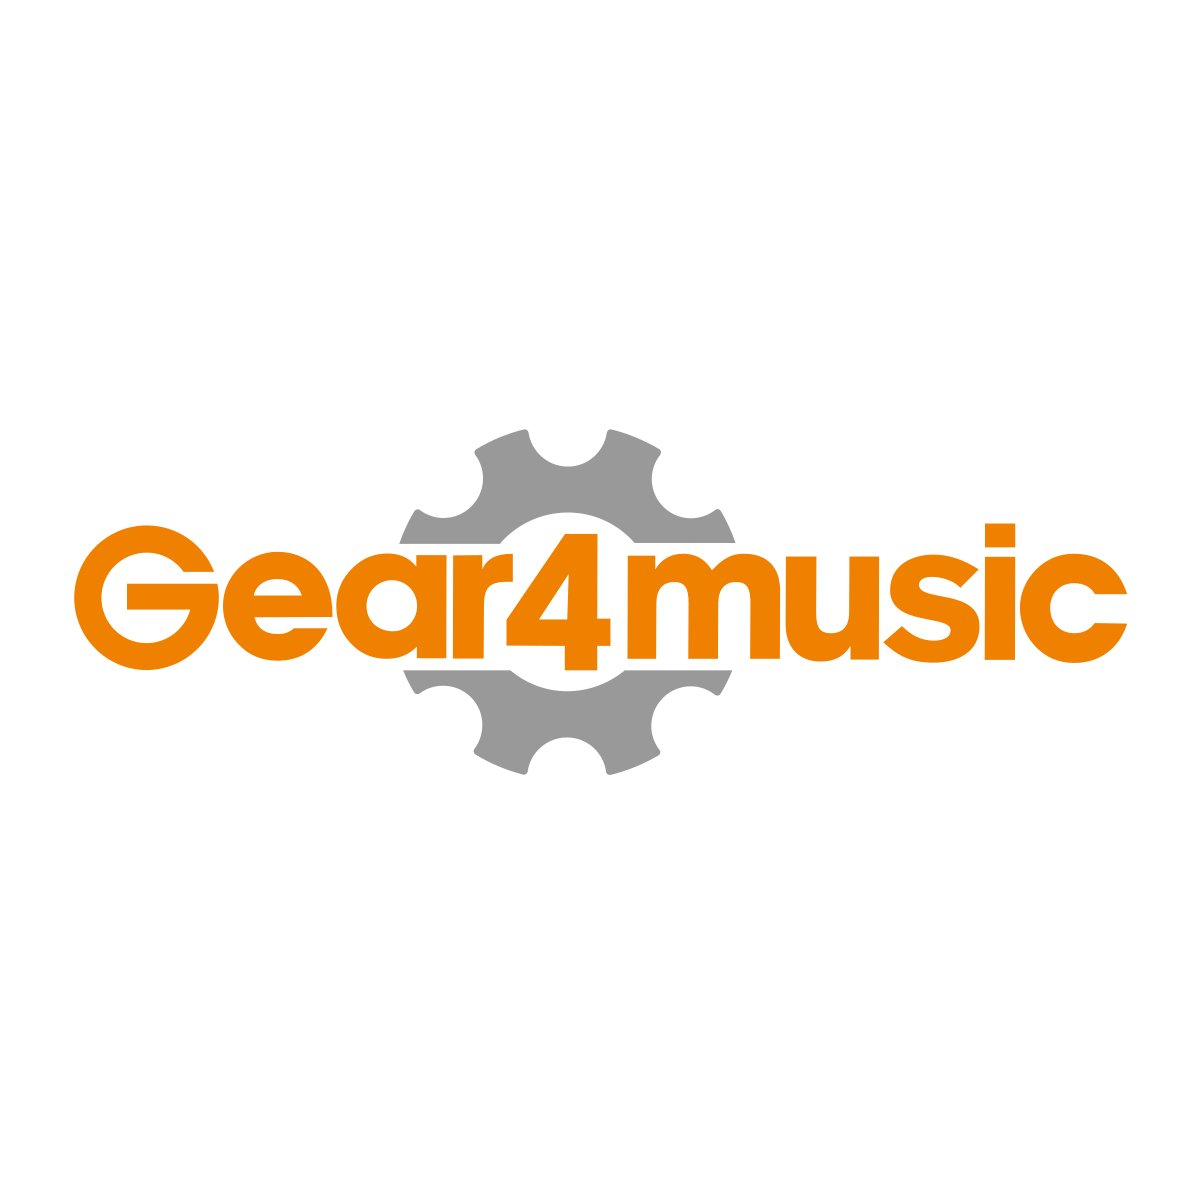 Accordéon diatonique par Gear4music, 12 basses